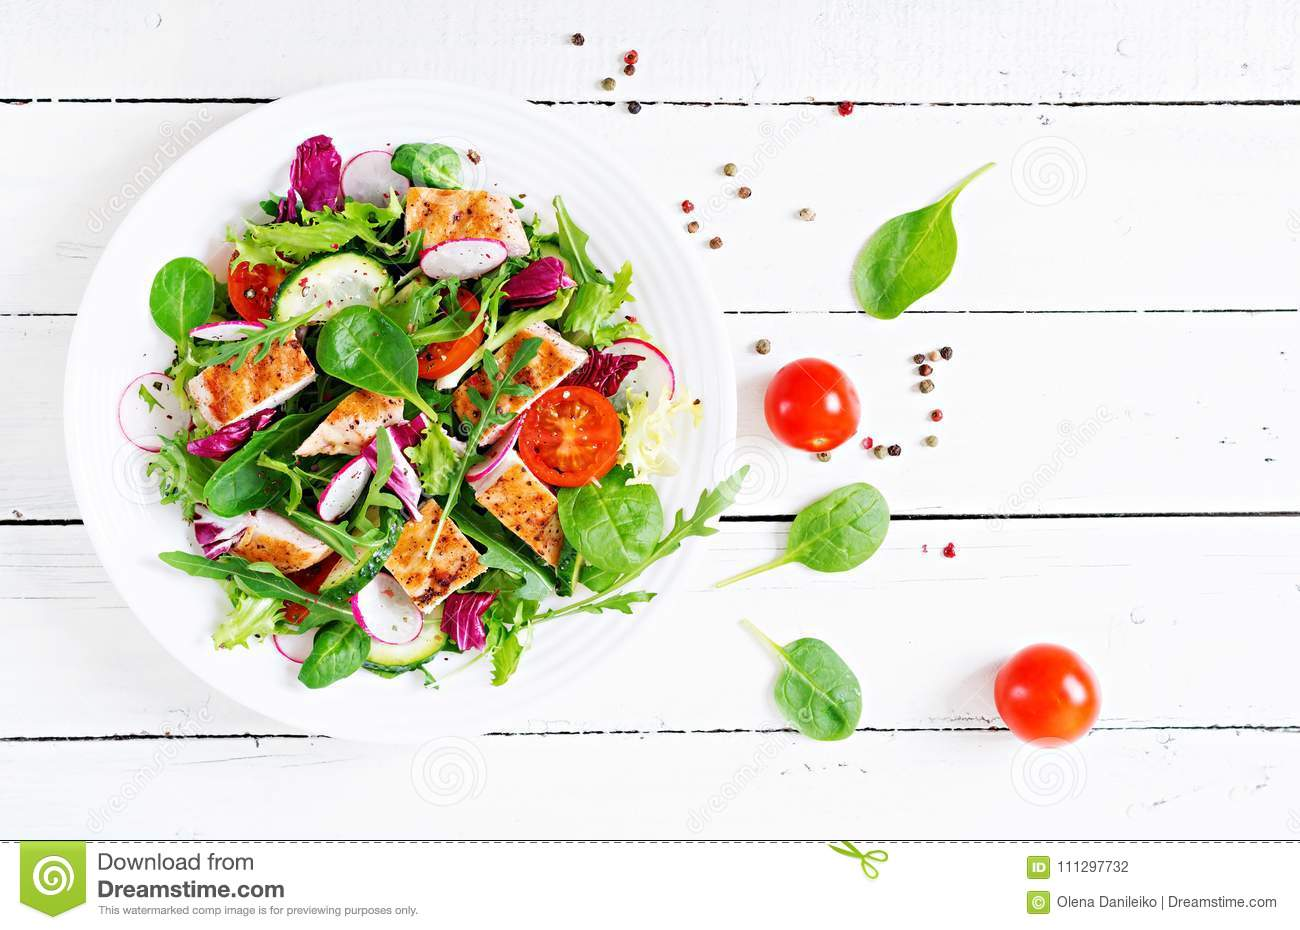 Fresh vegetable salad with grilled chicken breast - tomatoes, cucumbers, radish and mix lettuce leaves.